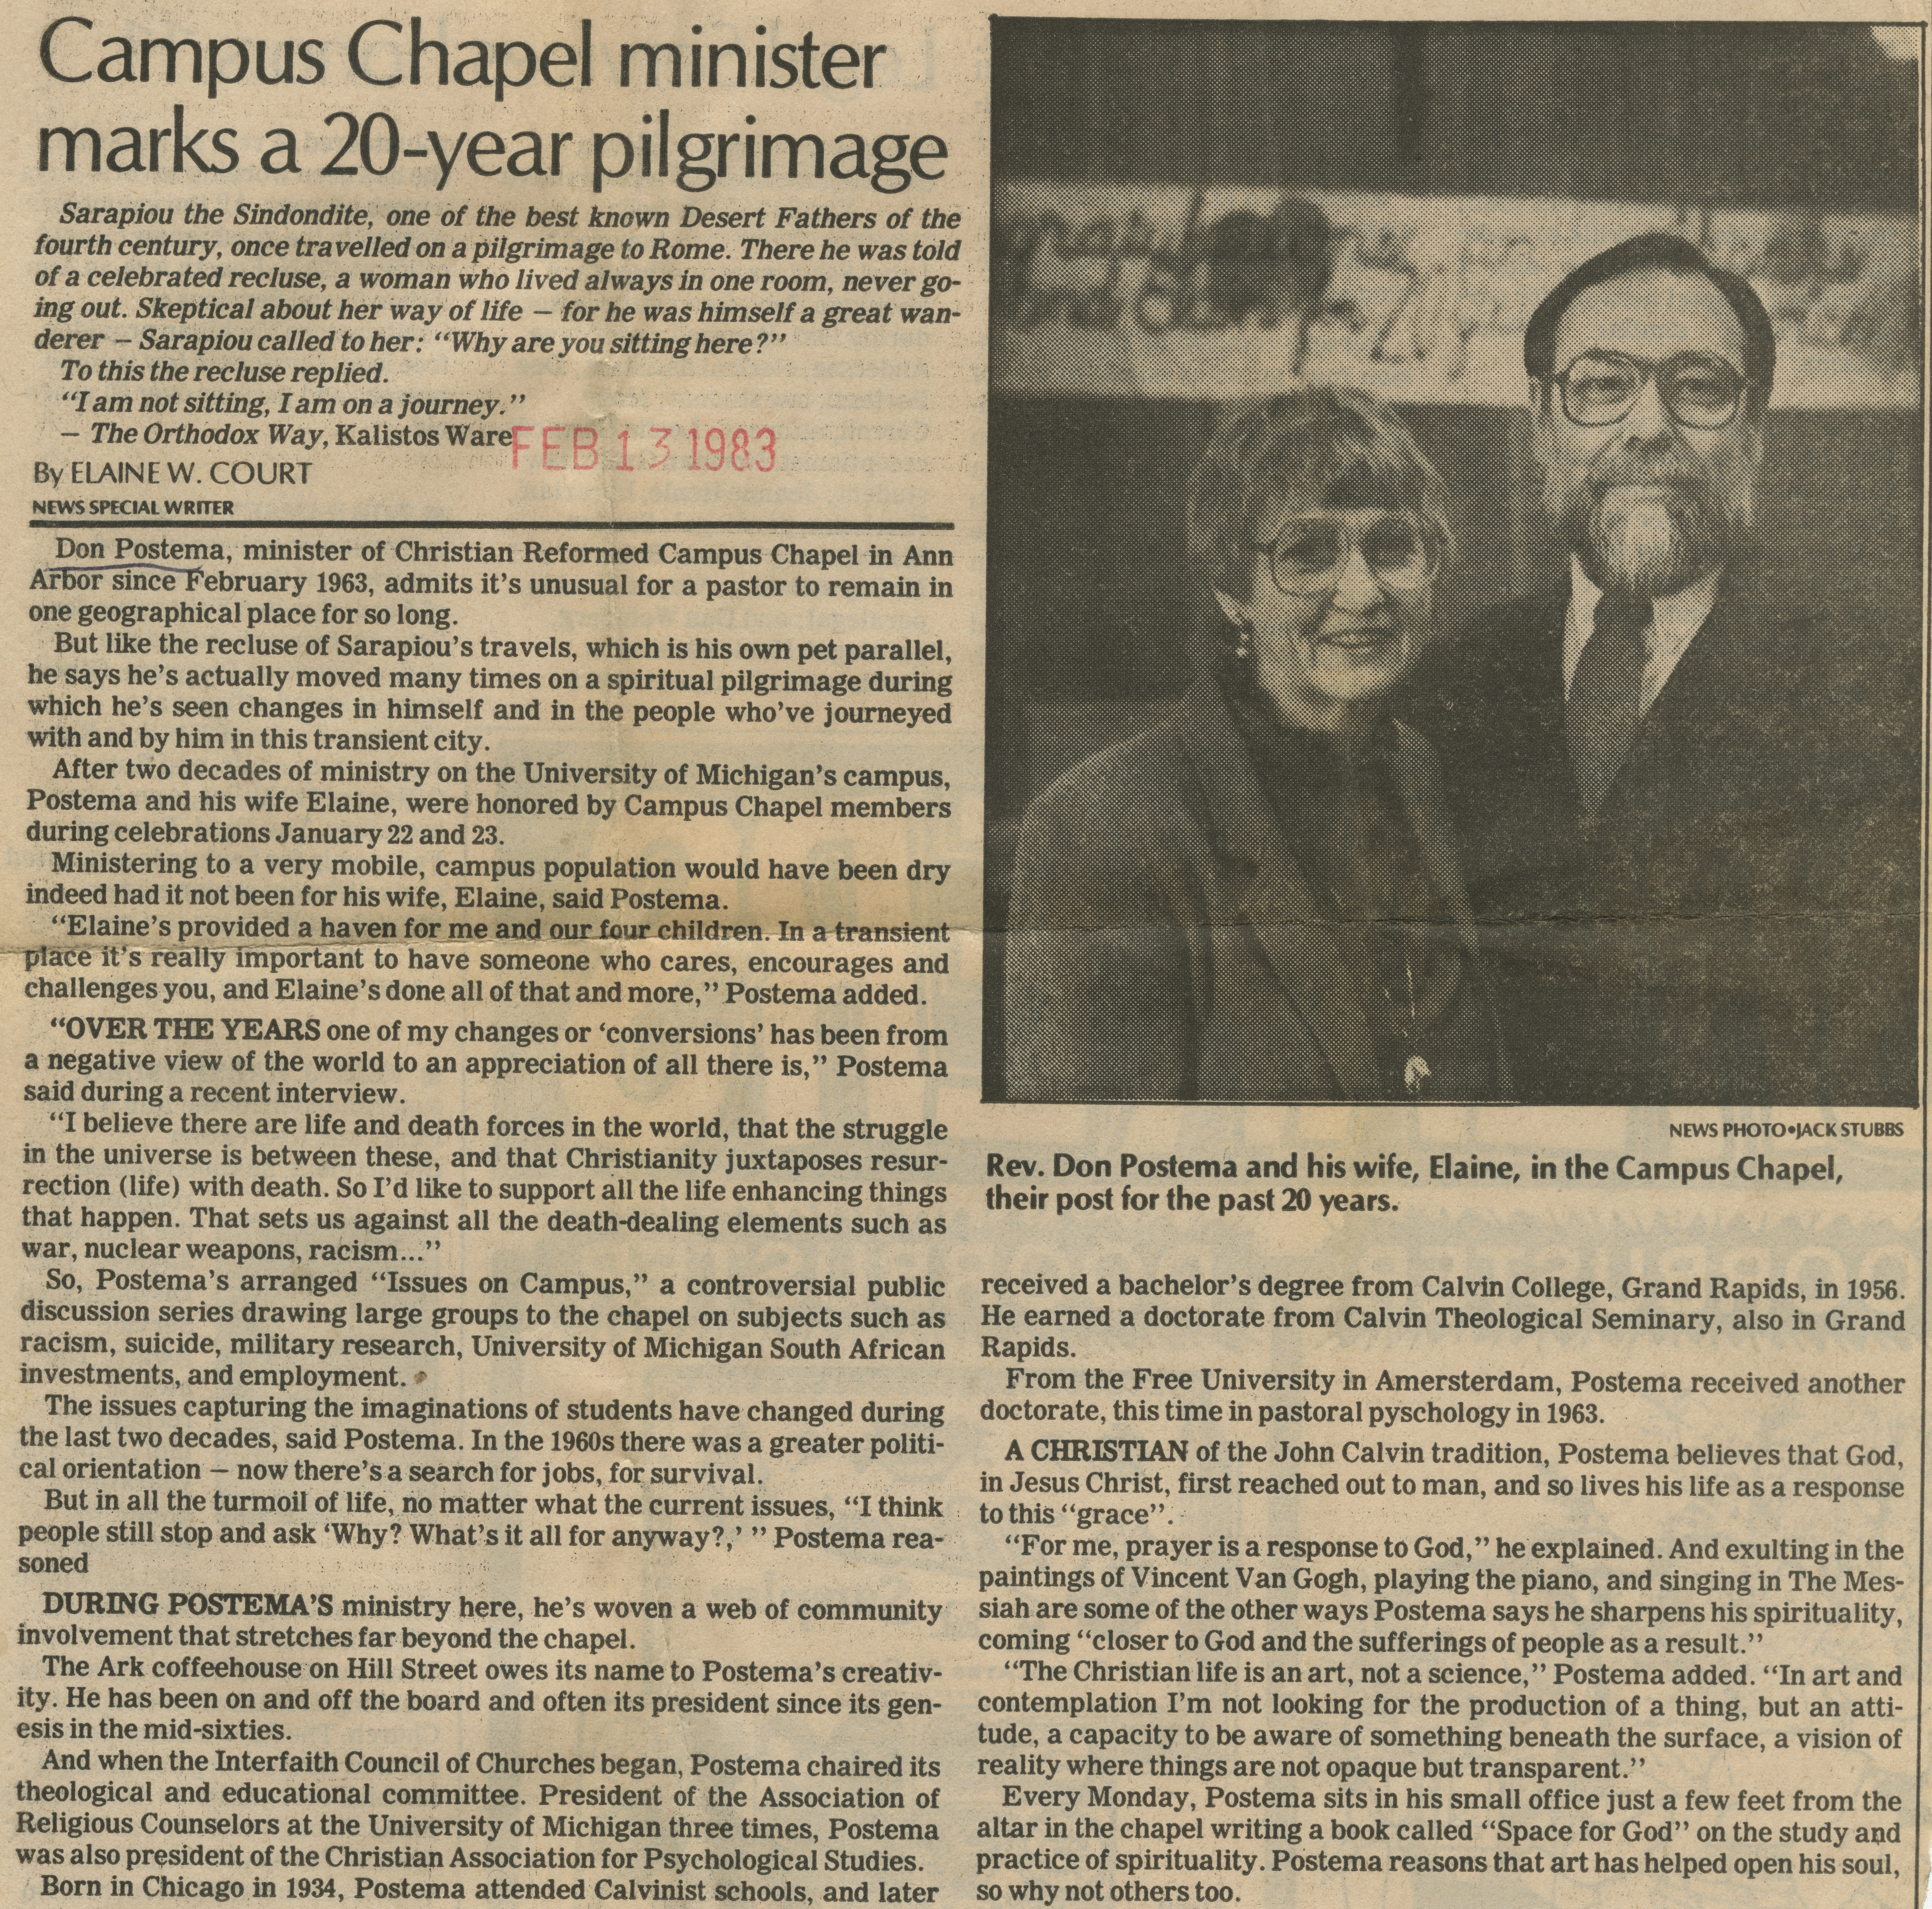 Campus Chapel minister marks a 20-year pilgrimage image